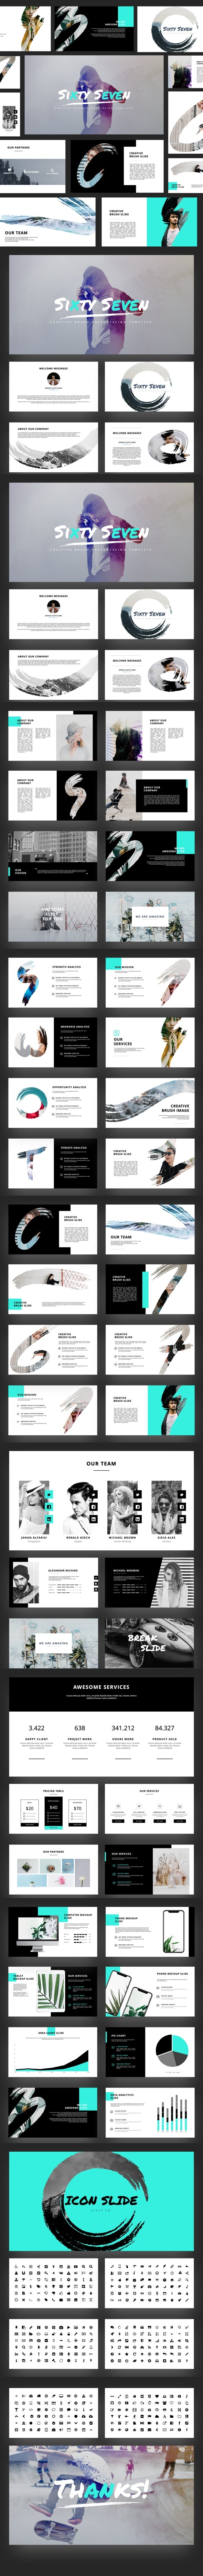 Sixty Seven - Creative Brush Keynote Template - Creative Keynote Templates